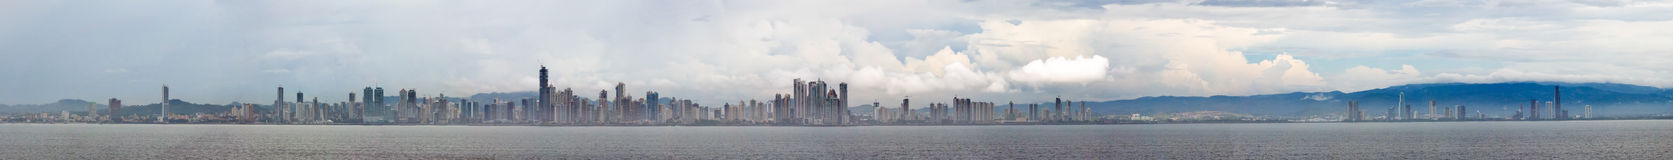 ville Panama panoramique photo stock